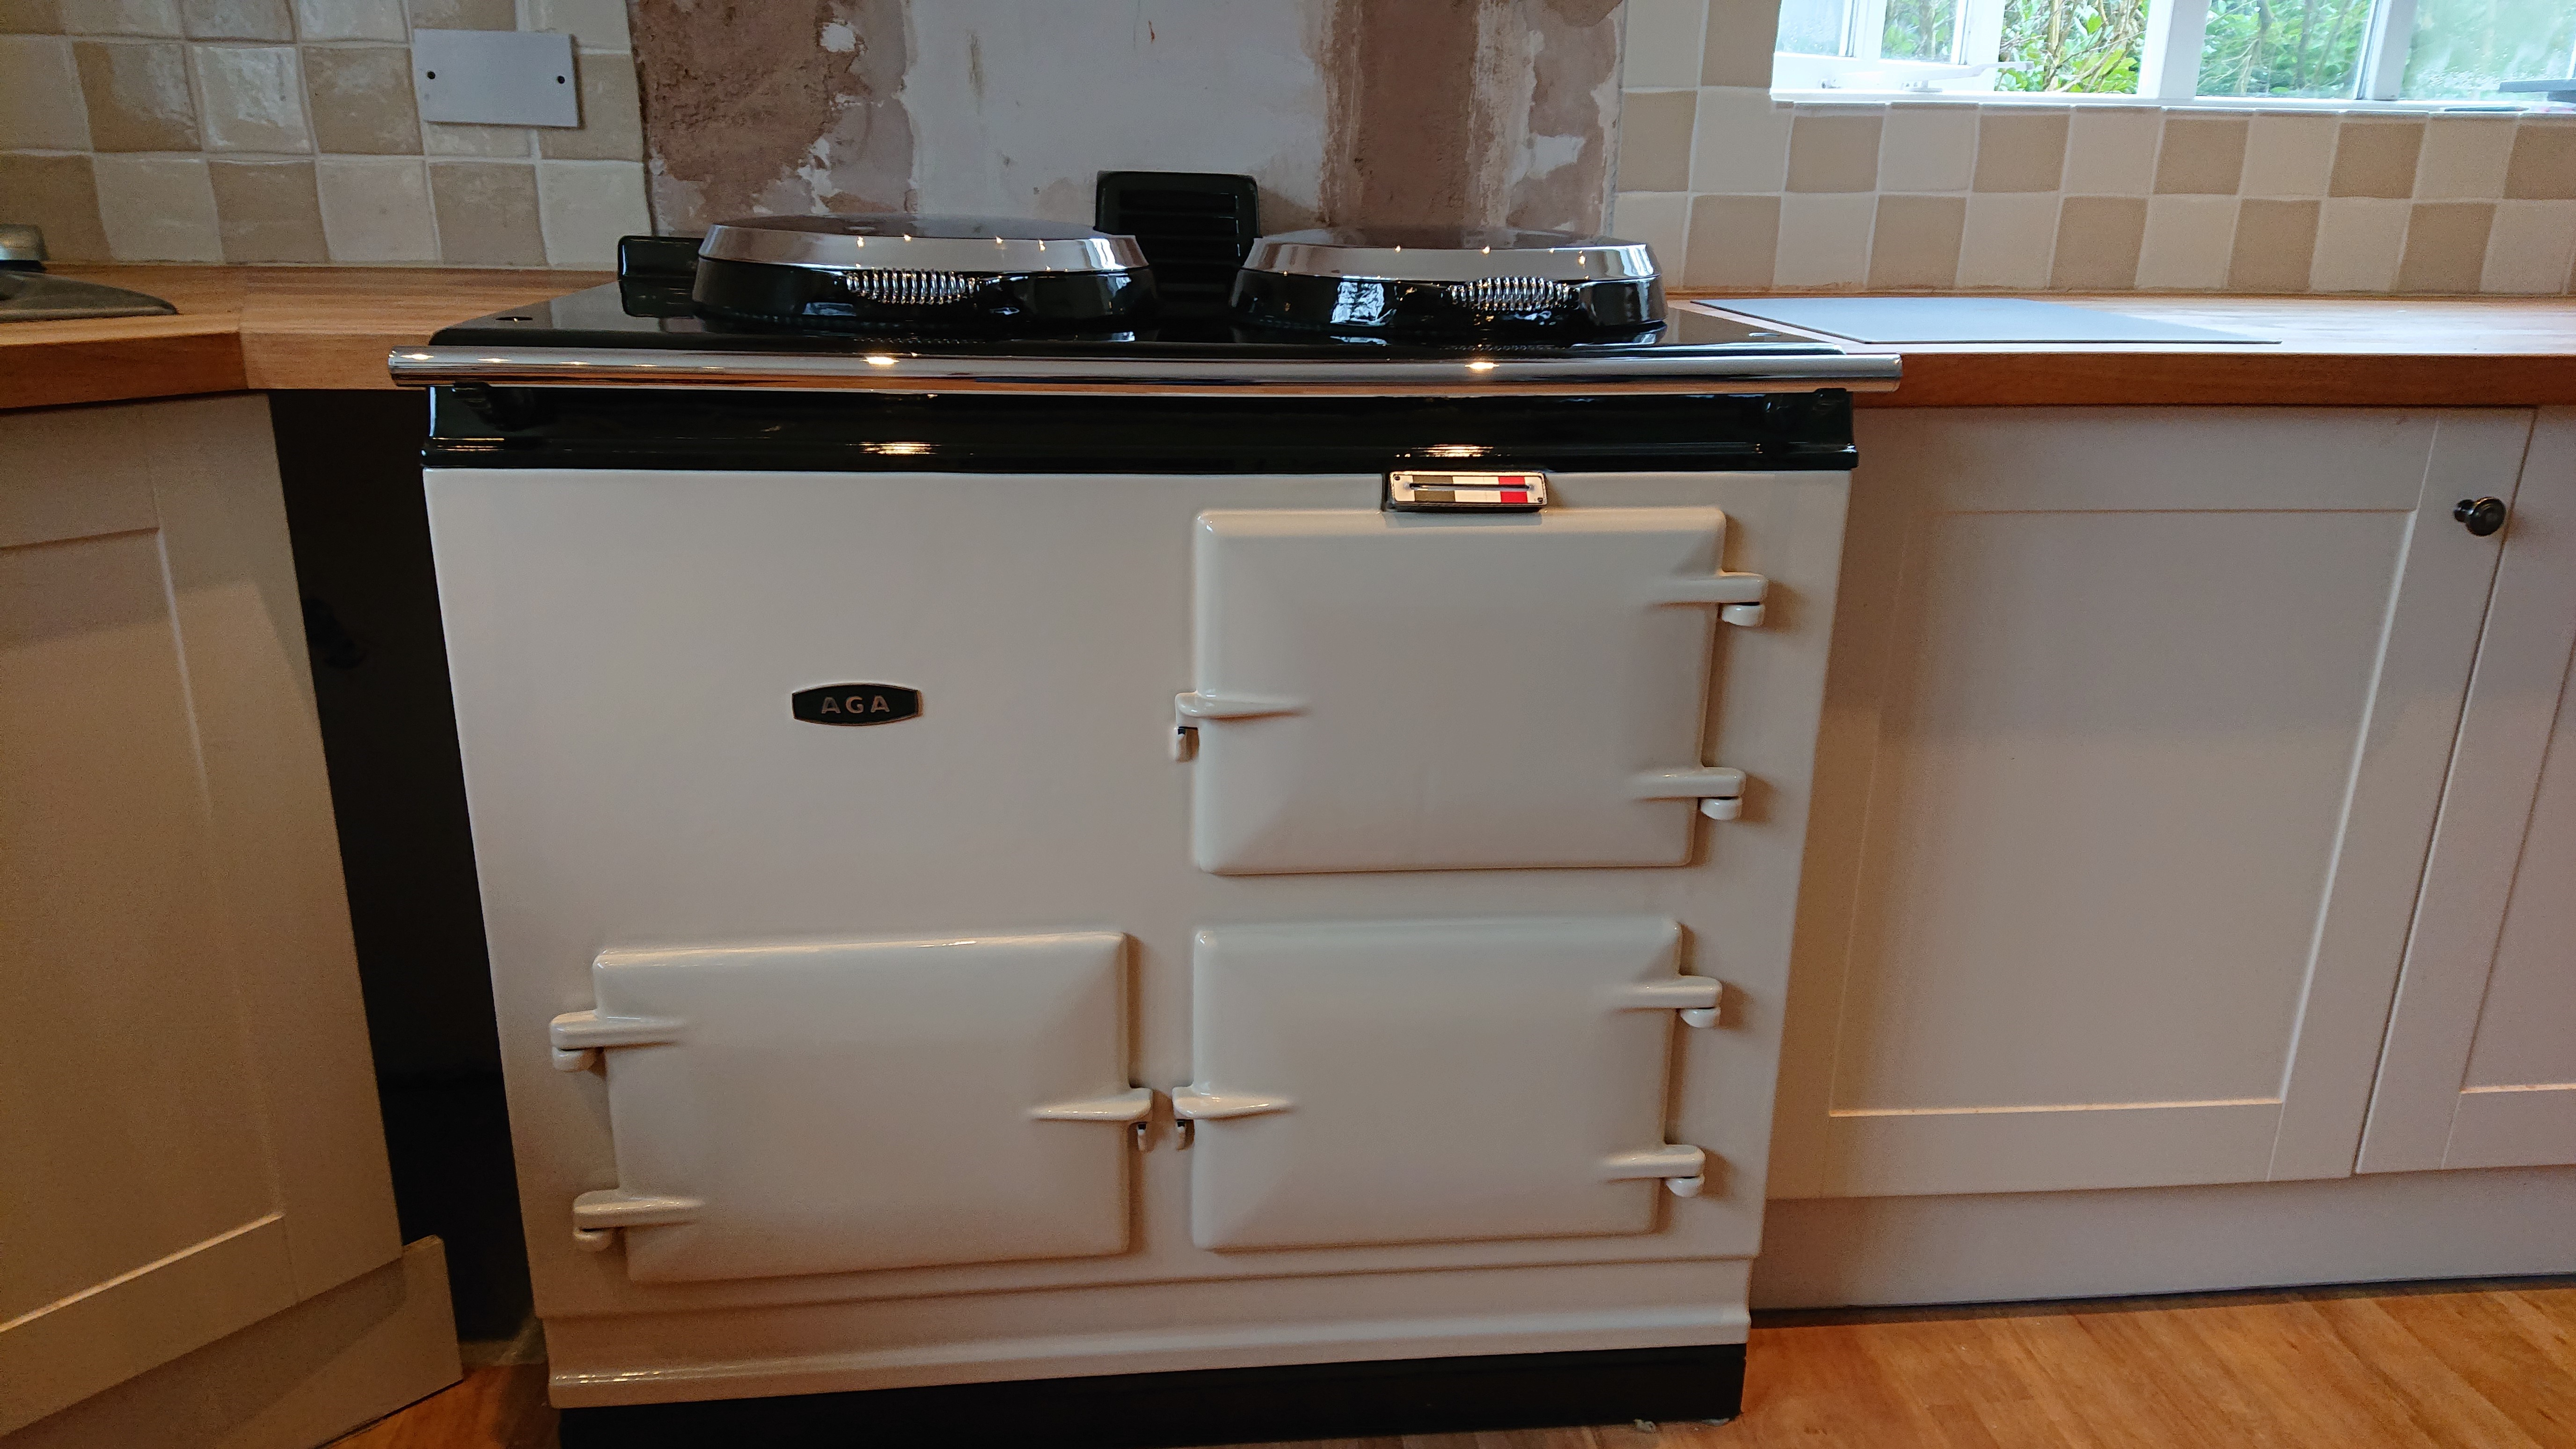 <p>2 Oven Pre 74 Aga Re-enamelled in Cream running on Electric</p><p>Installed in Ashmore, Dorset